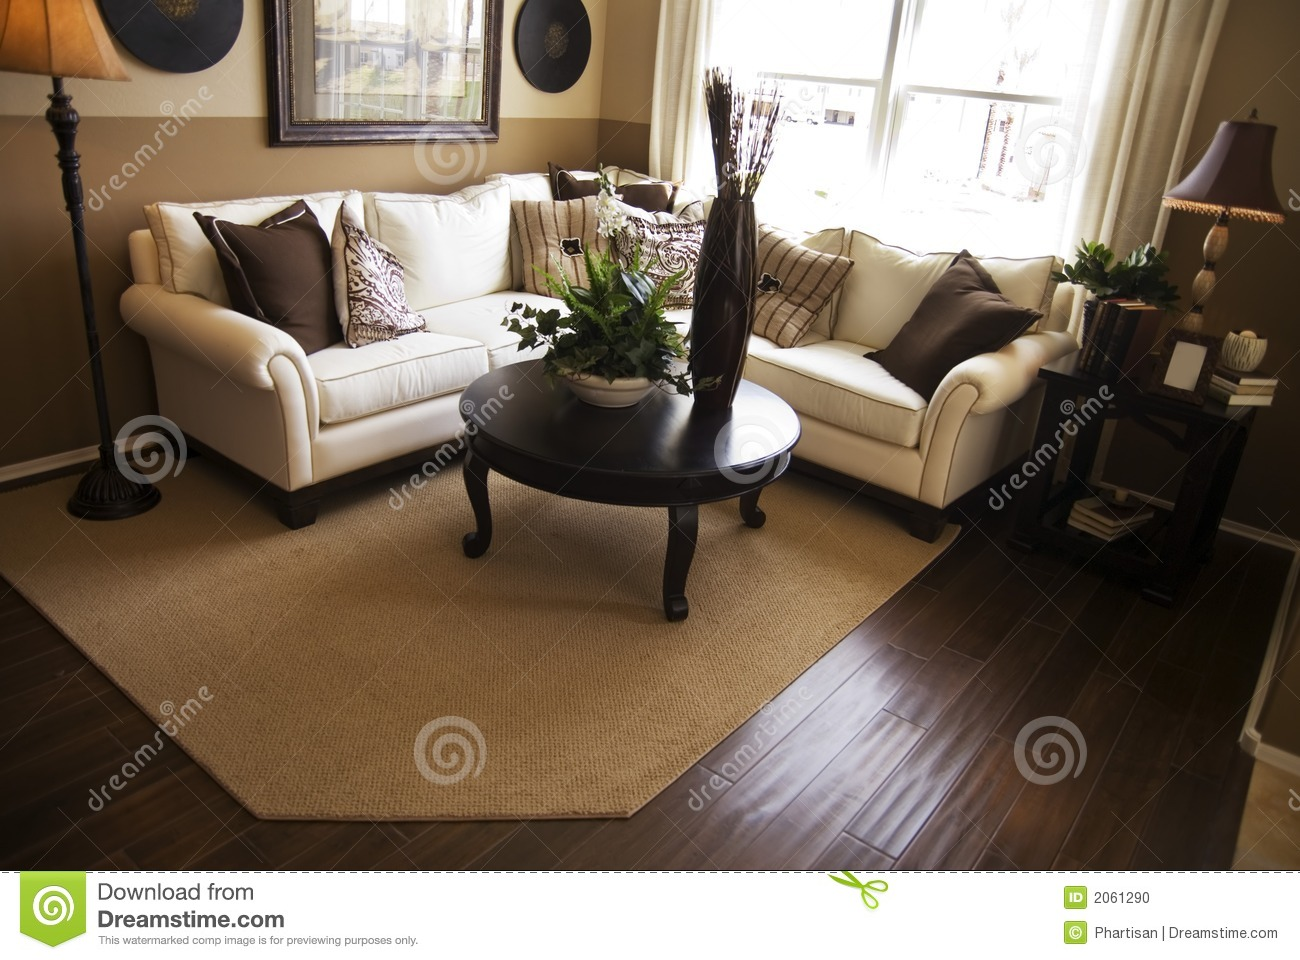 Hardwood flooring in living room stock photo image 2061290 for Living room with wood floors